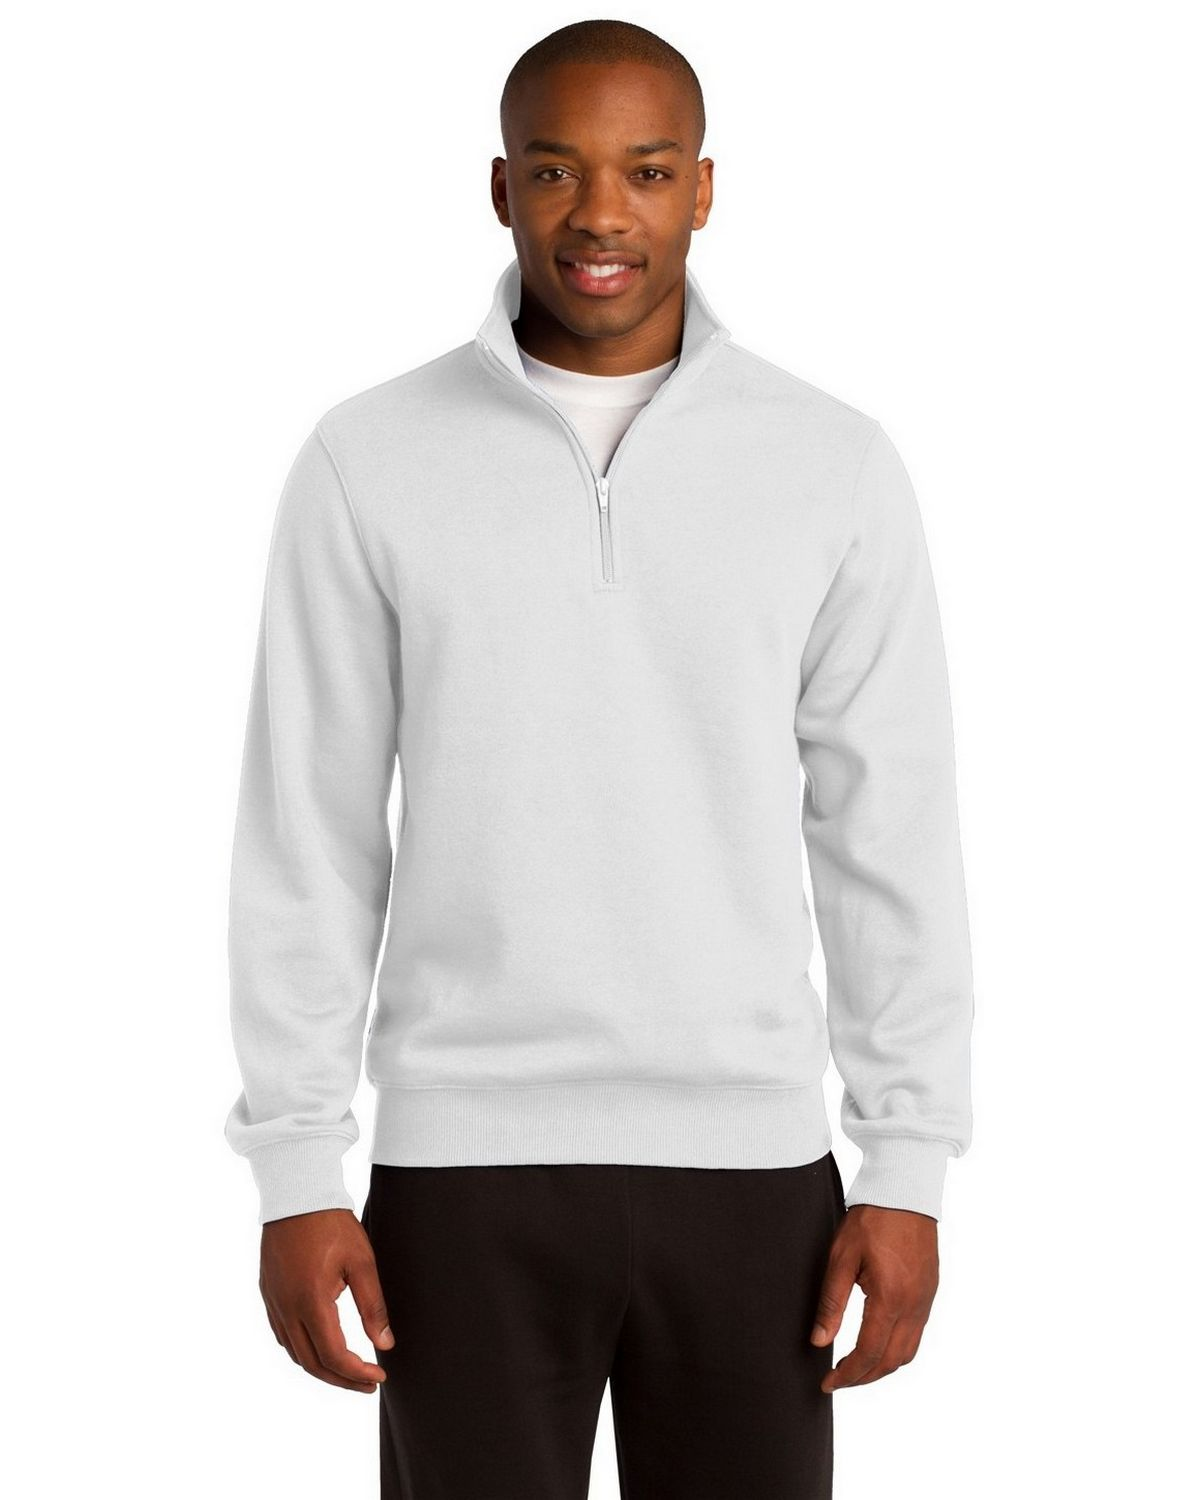 a7d4c0e99fe Sport-Tek ST253 1 4-Zip Sweatshirt by Port Authority - ApparelnBags.com